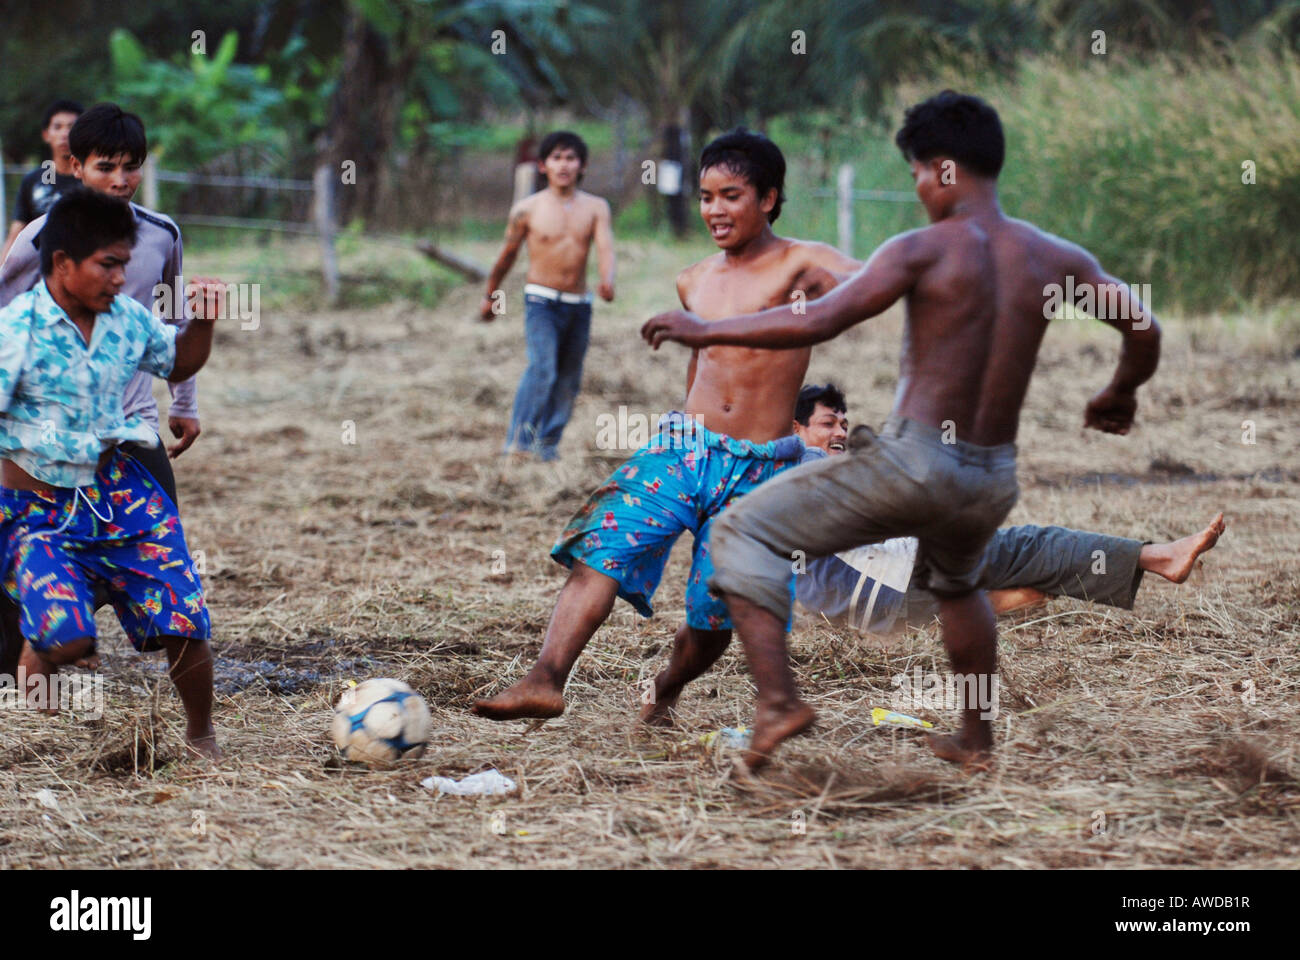 Boys playing football in rural Cambodia Stock Photo